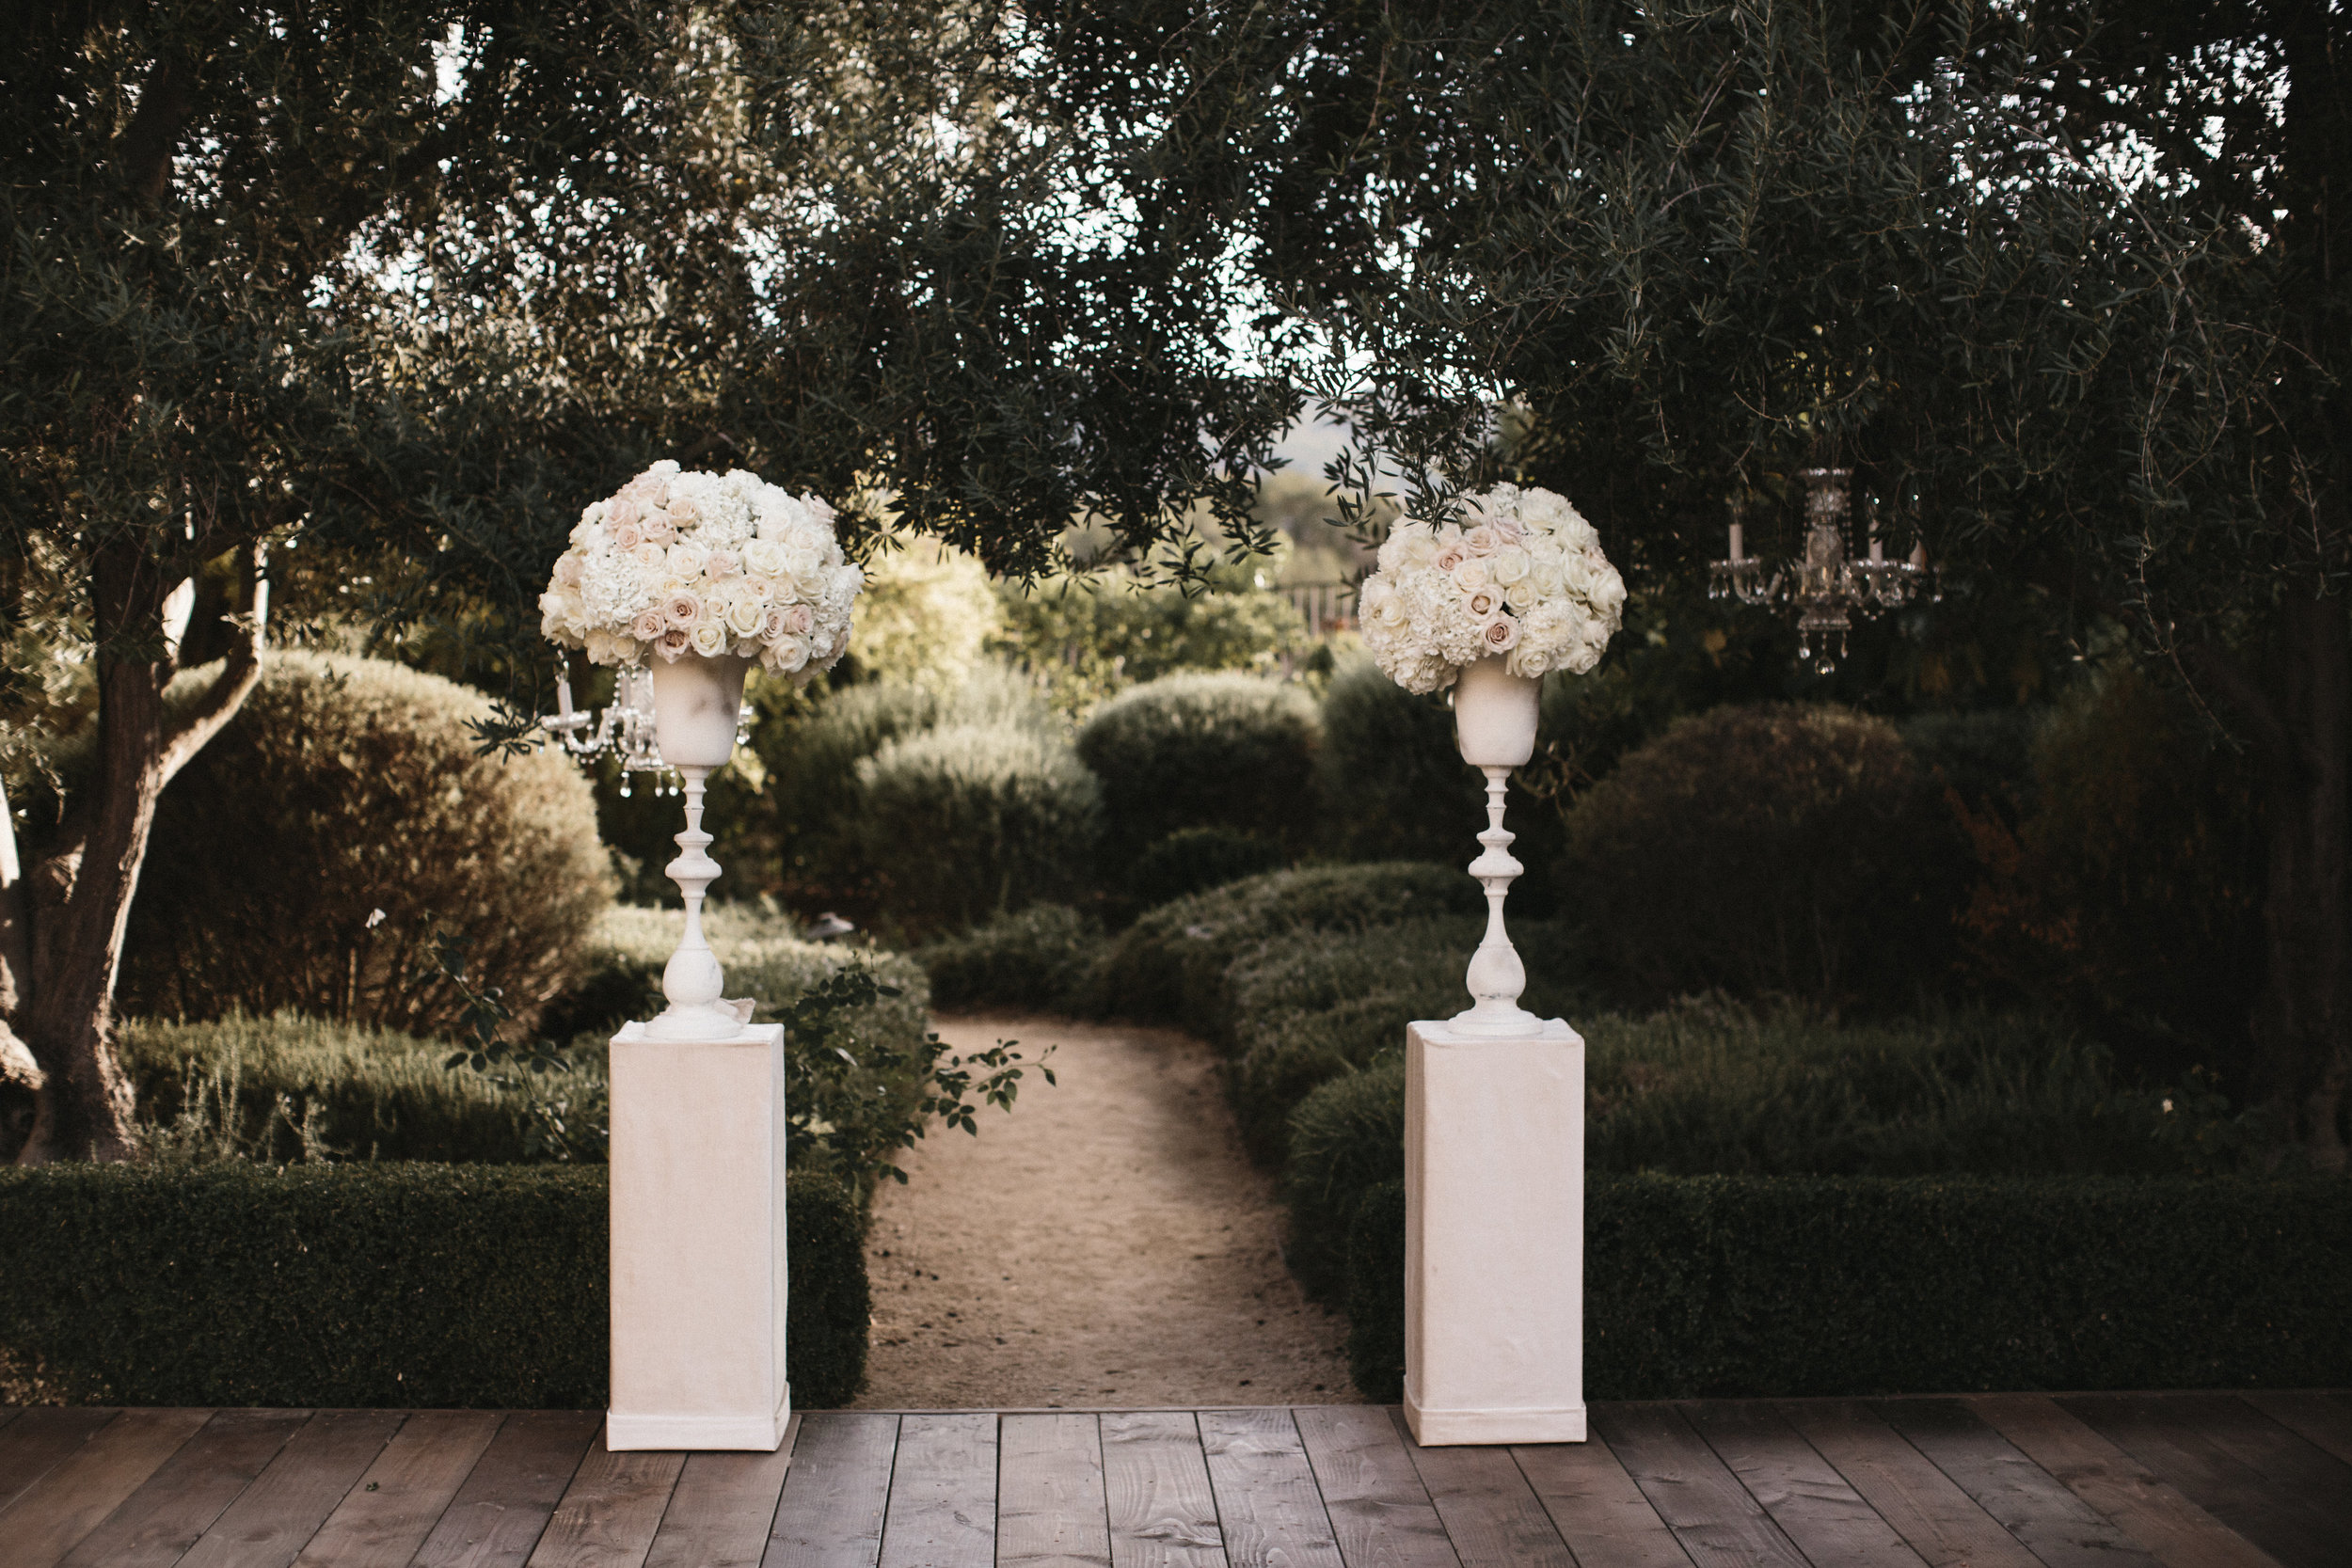 aisle floral arrangements on pedestals